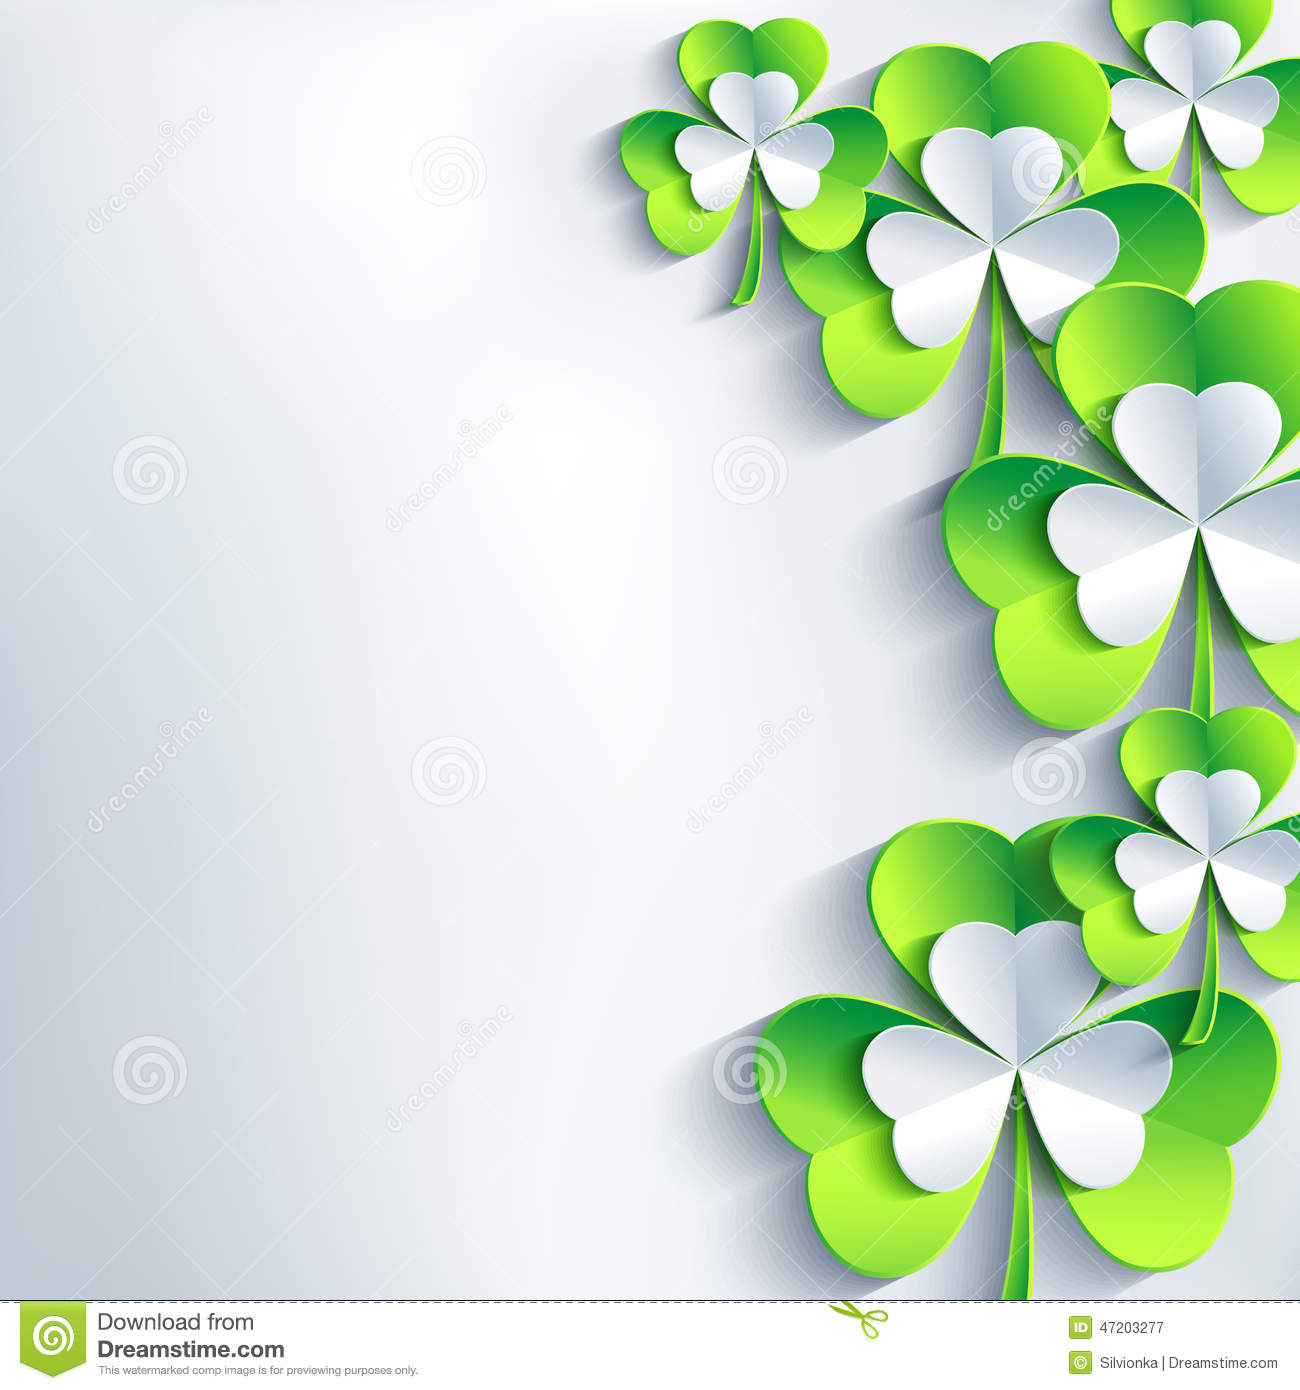 st patricks day wallpaper images